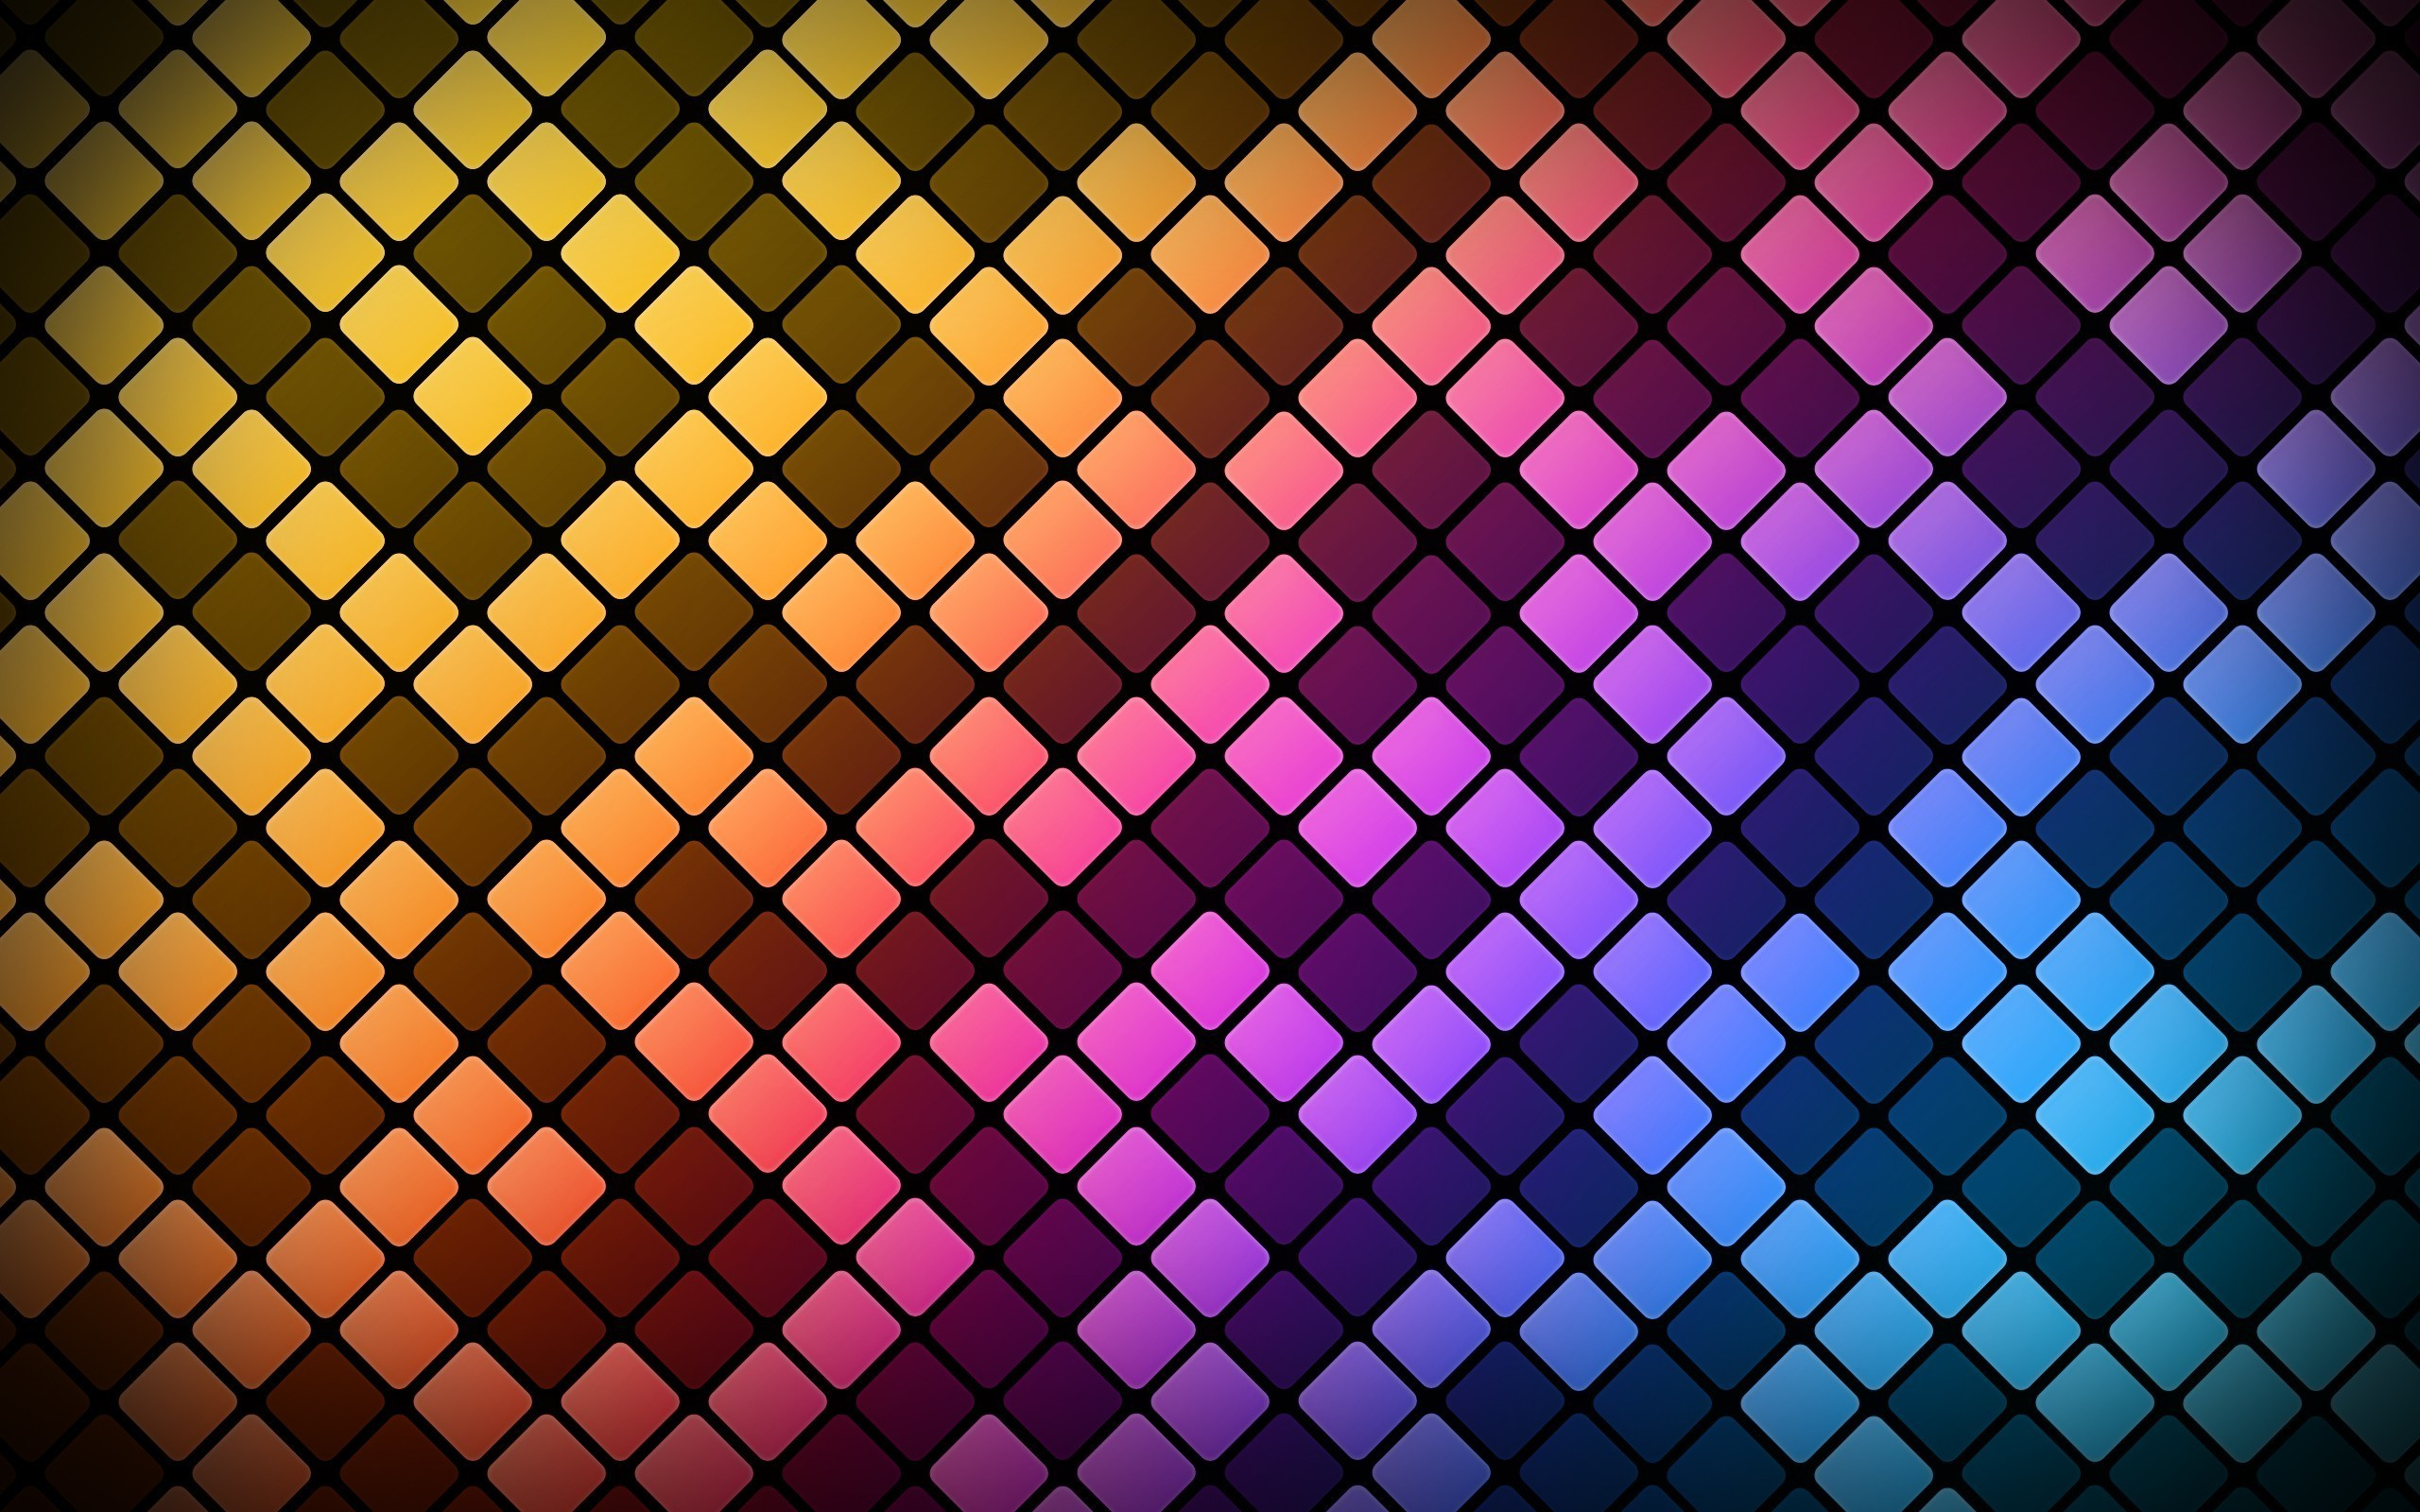 Colorful, Pattern, Abstract, Square, Digital Art, Lines - Textures In Square Patterns - HD Wallpaper